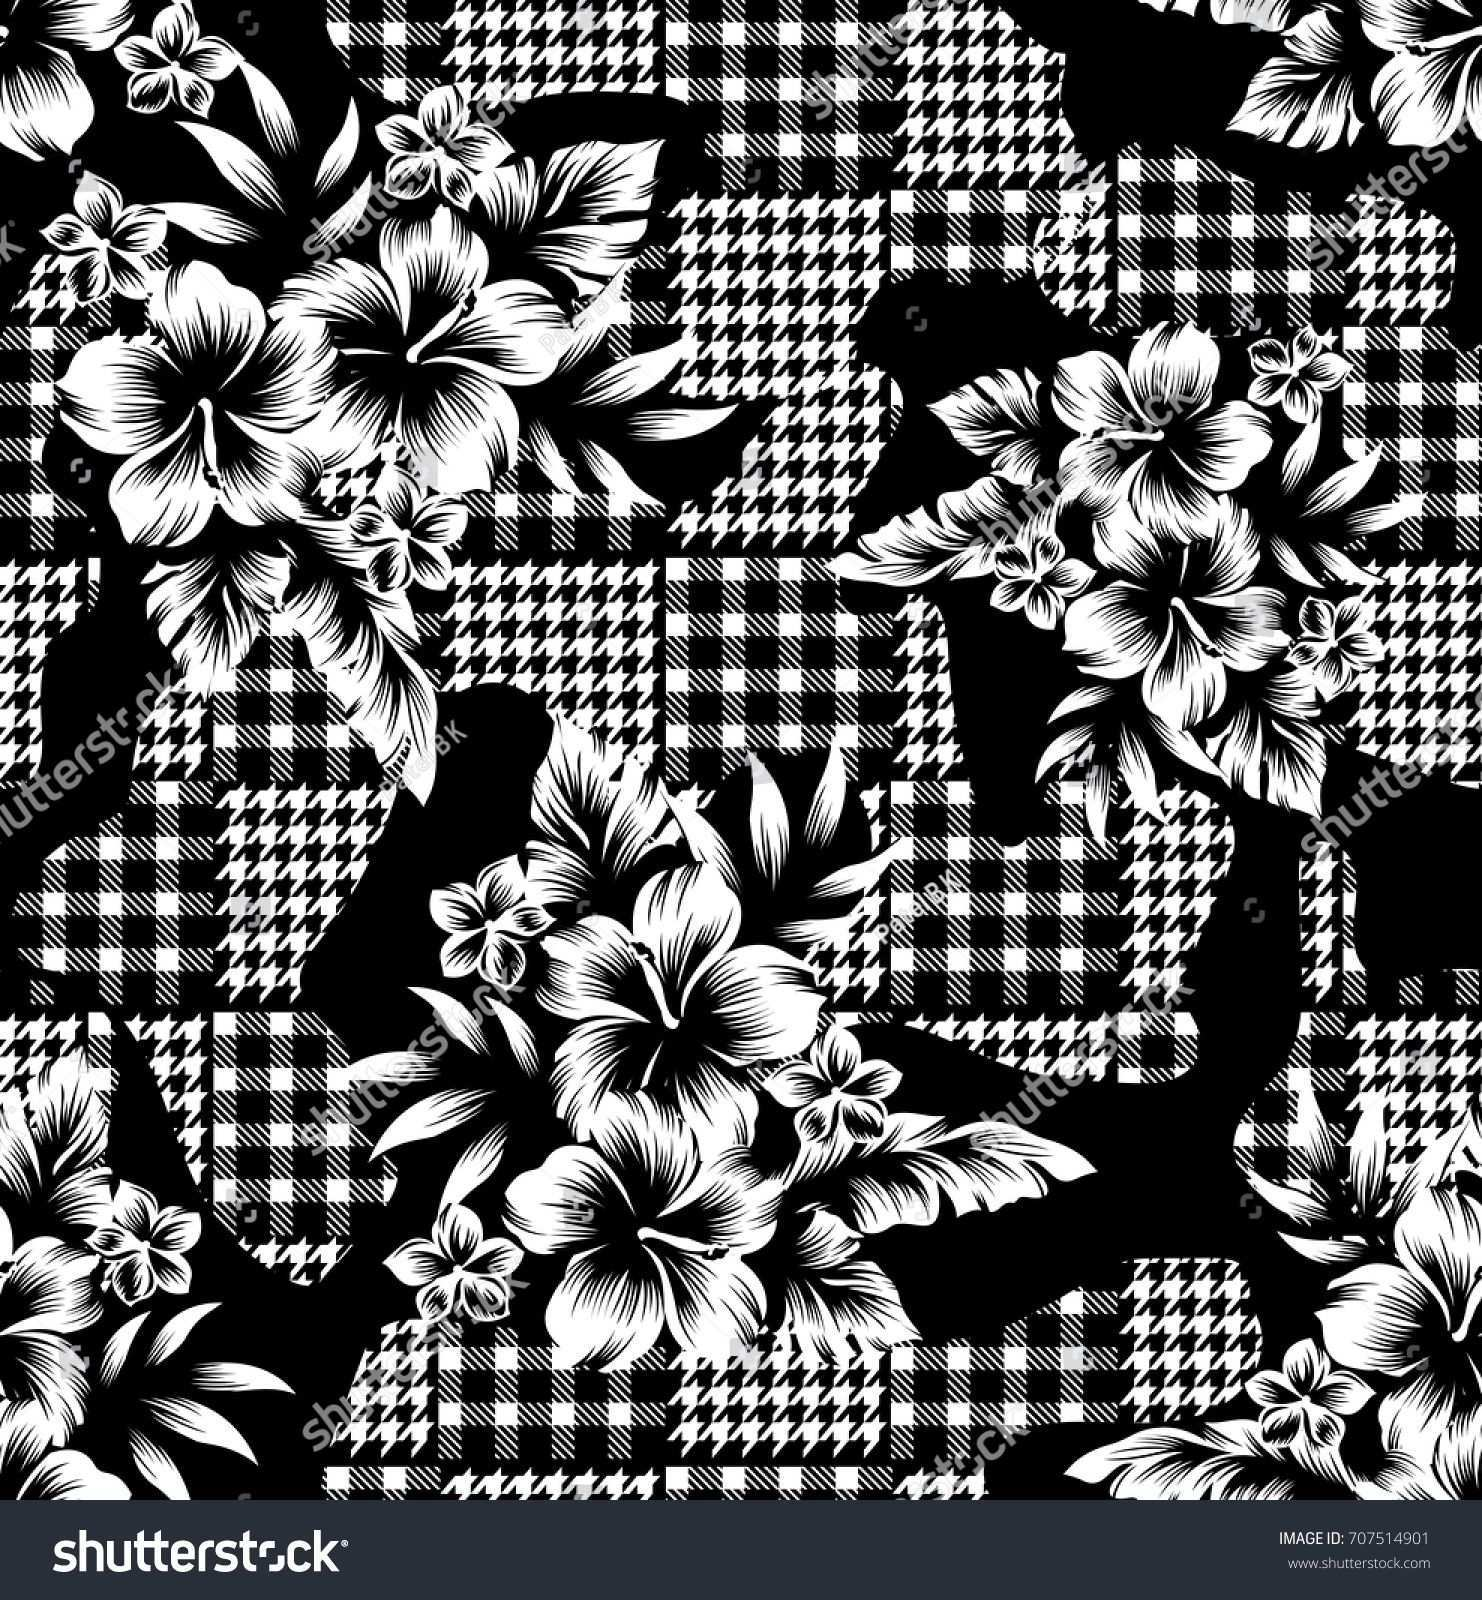 Eclectic Fabric Plaid Seamless Pattern With Baroque Ornament Musterkunst Hintergrundmuster Muster